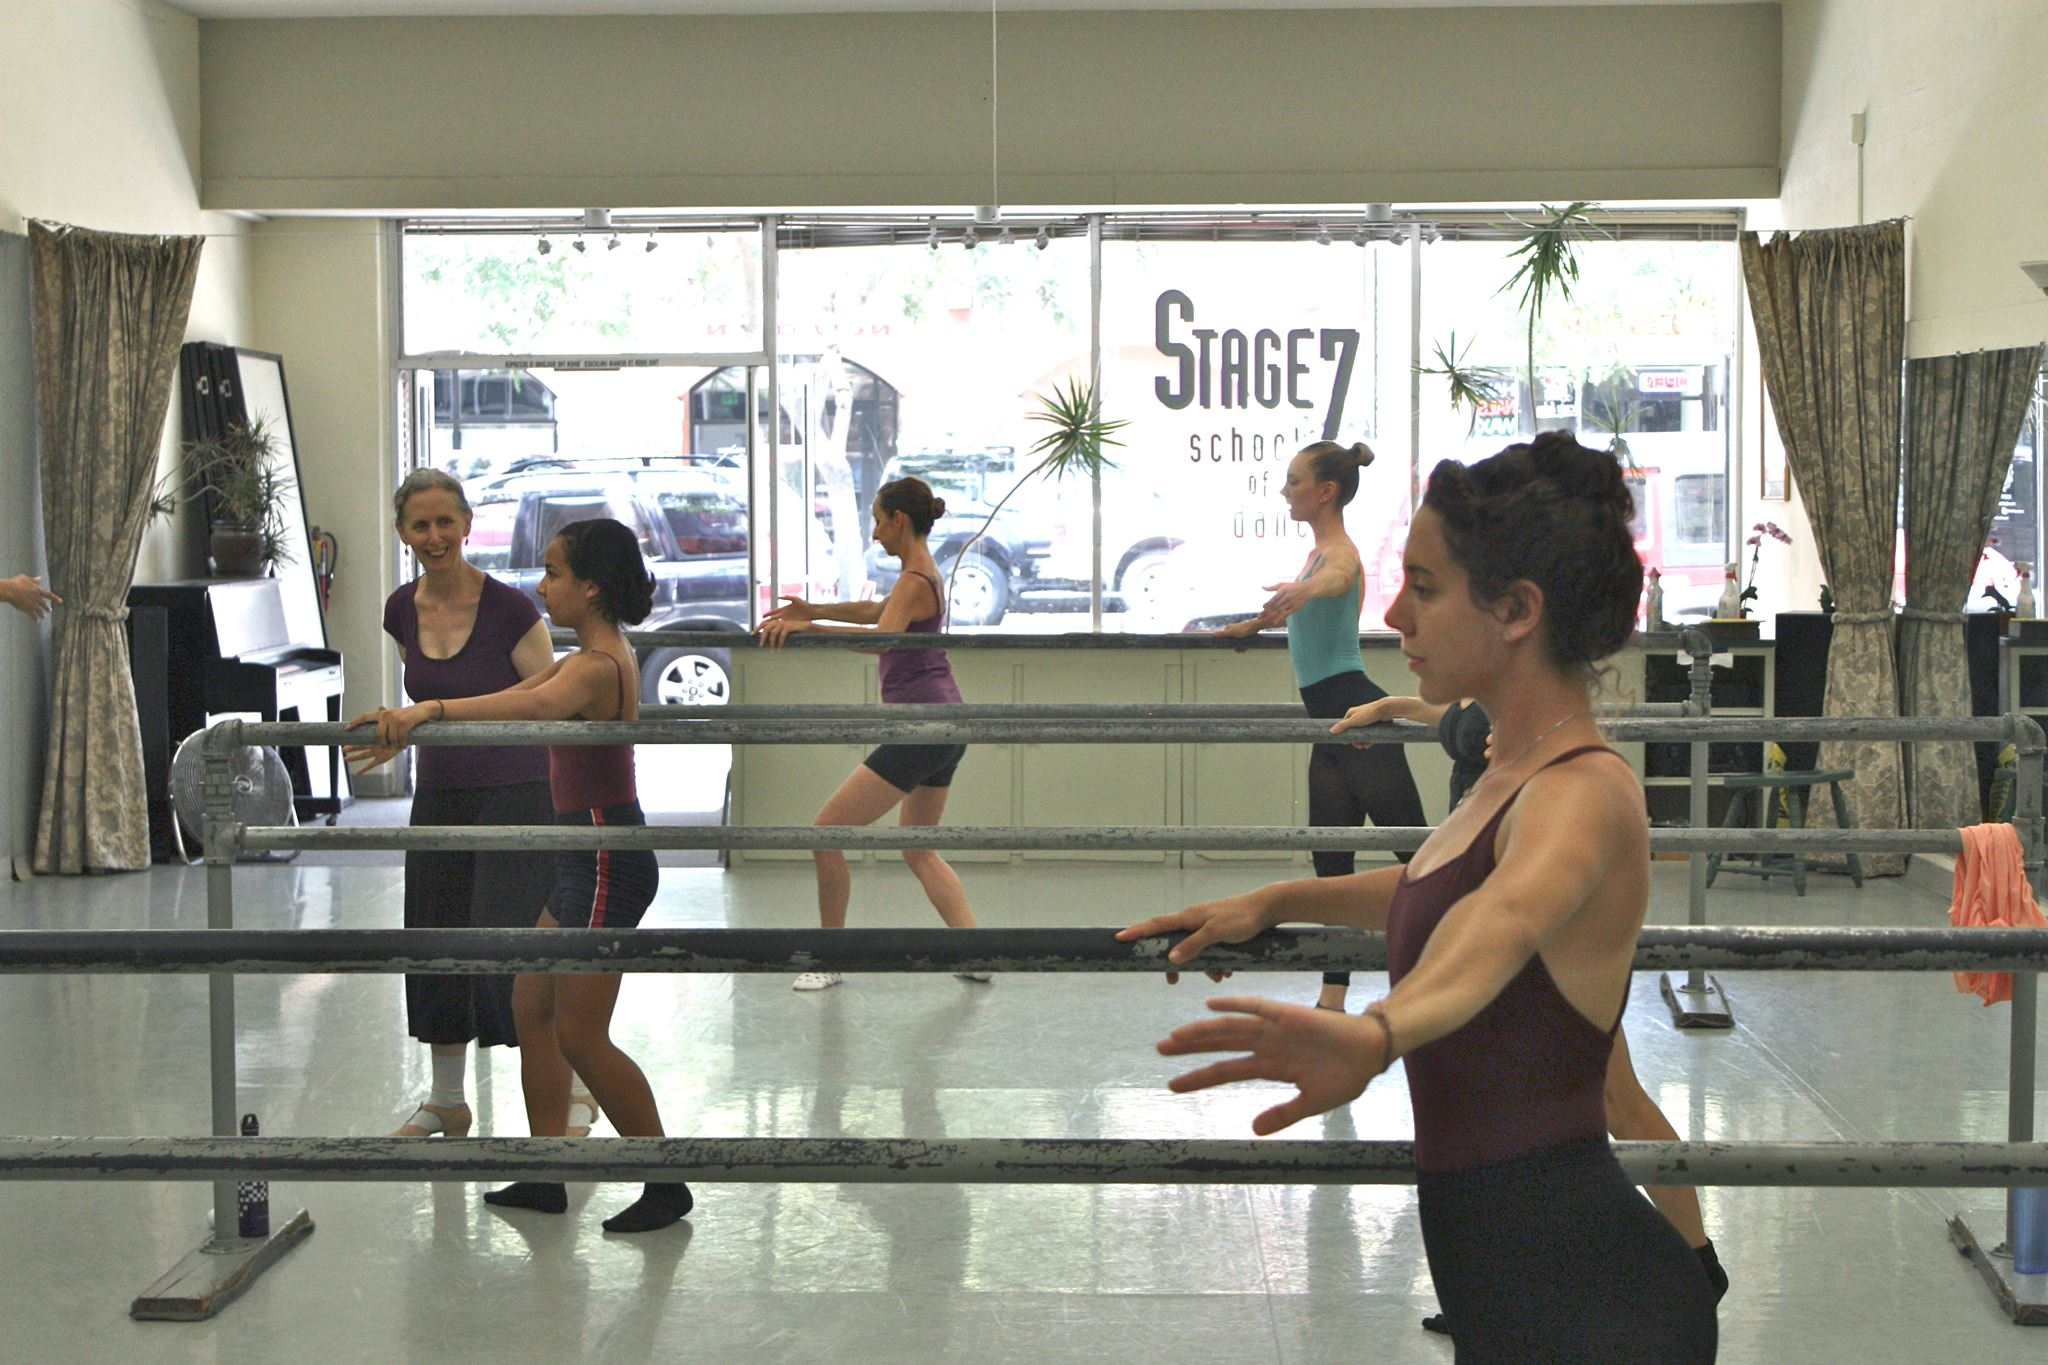 Stage 7 School Of Dance Quality Dance Programs For Over